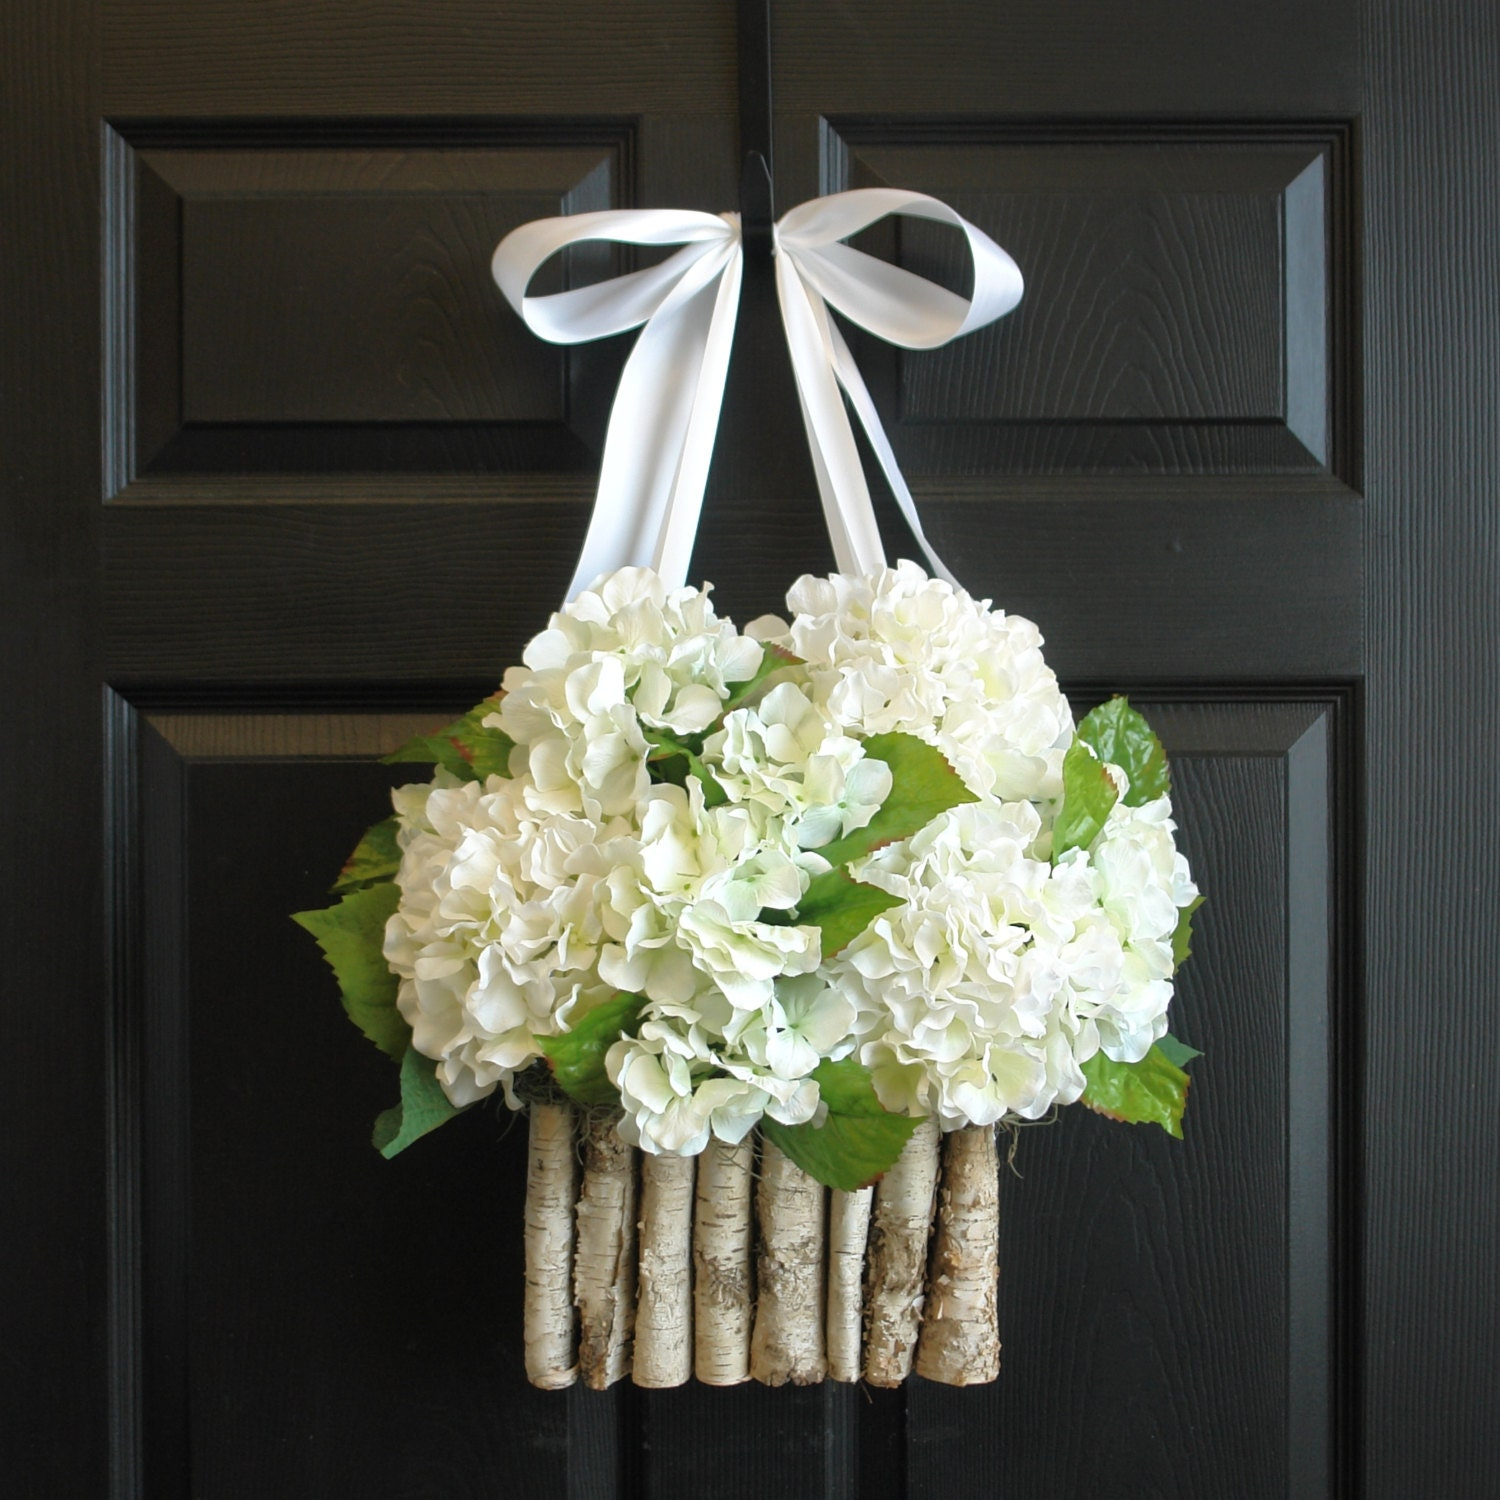 7 Barn Wedding Decoration Ideas For A Spring Wedding: Spring Wreath Summer Wreath Wedding Front Door Wreaths